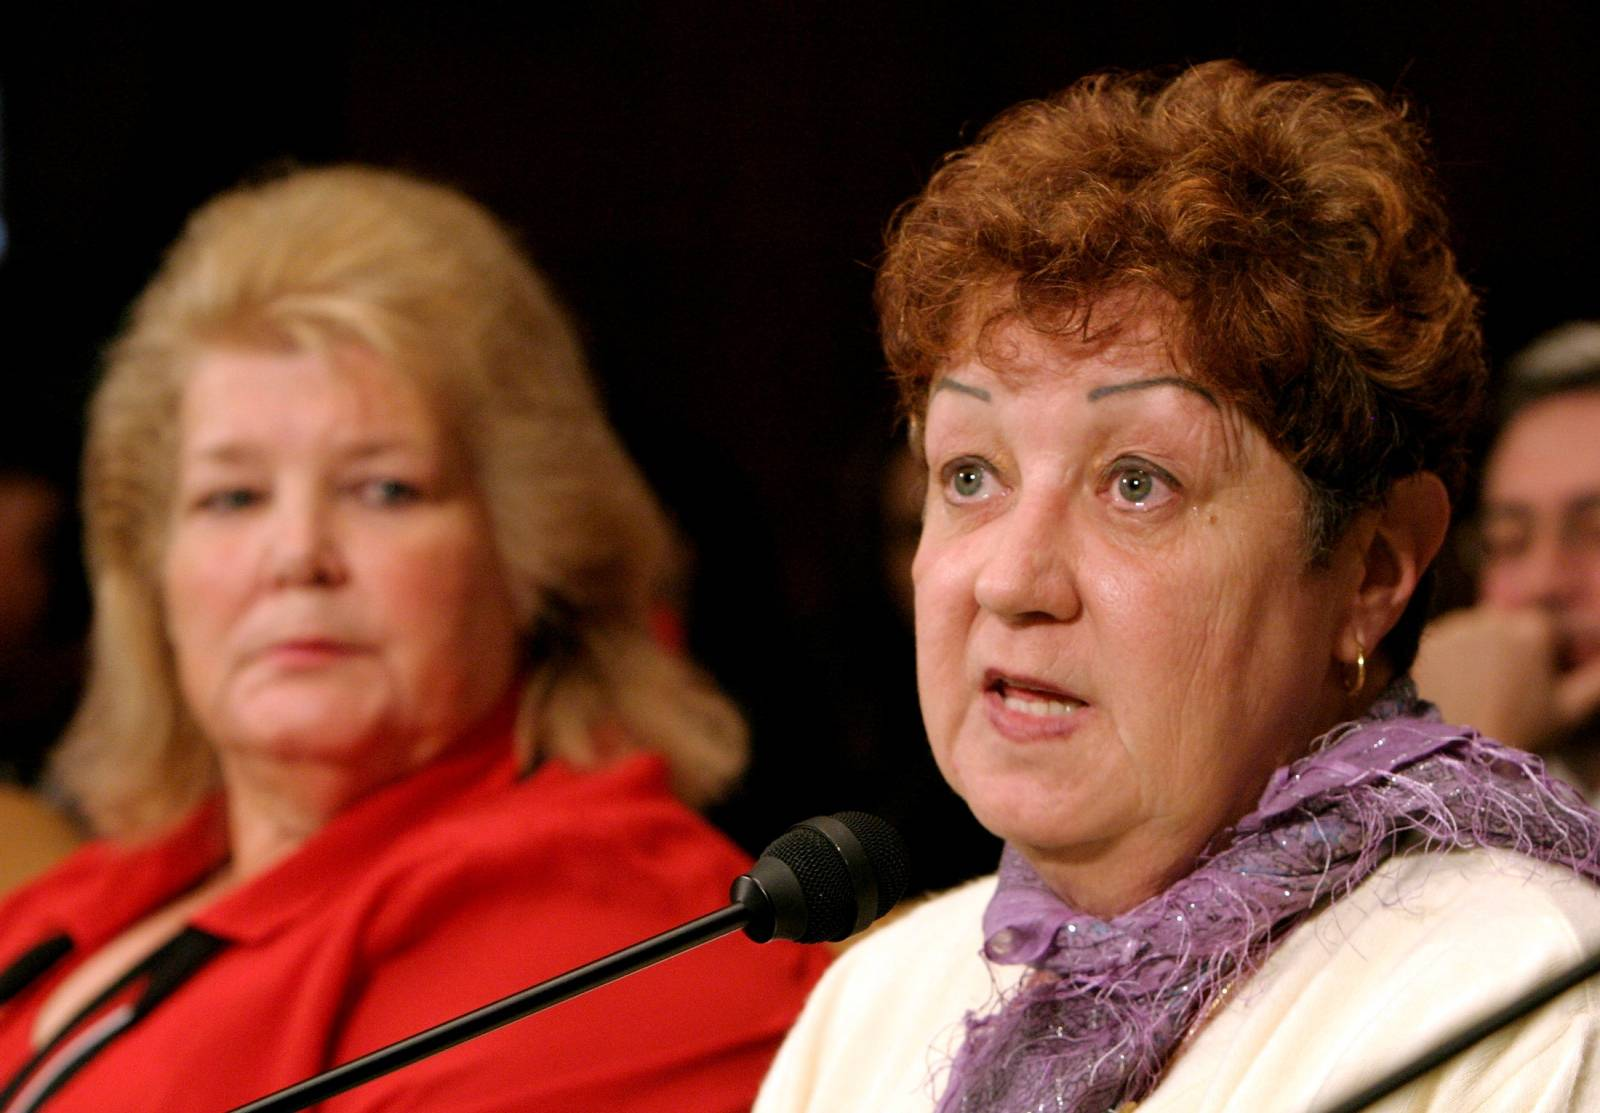 FILE PHOTO: Congress holds a hearing on the consequences of Roe v. Wade and Doe v. Bolton on Capitol Hill.